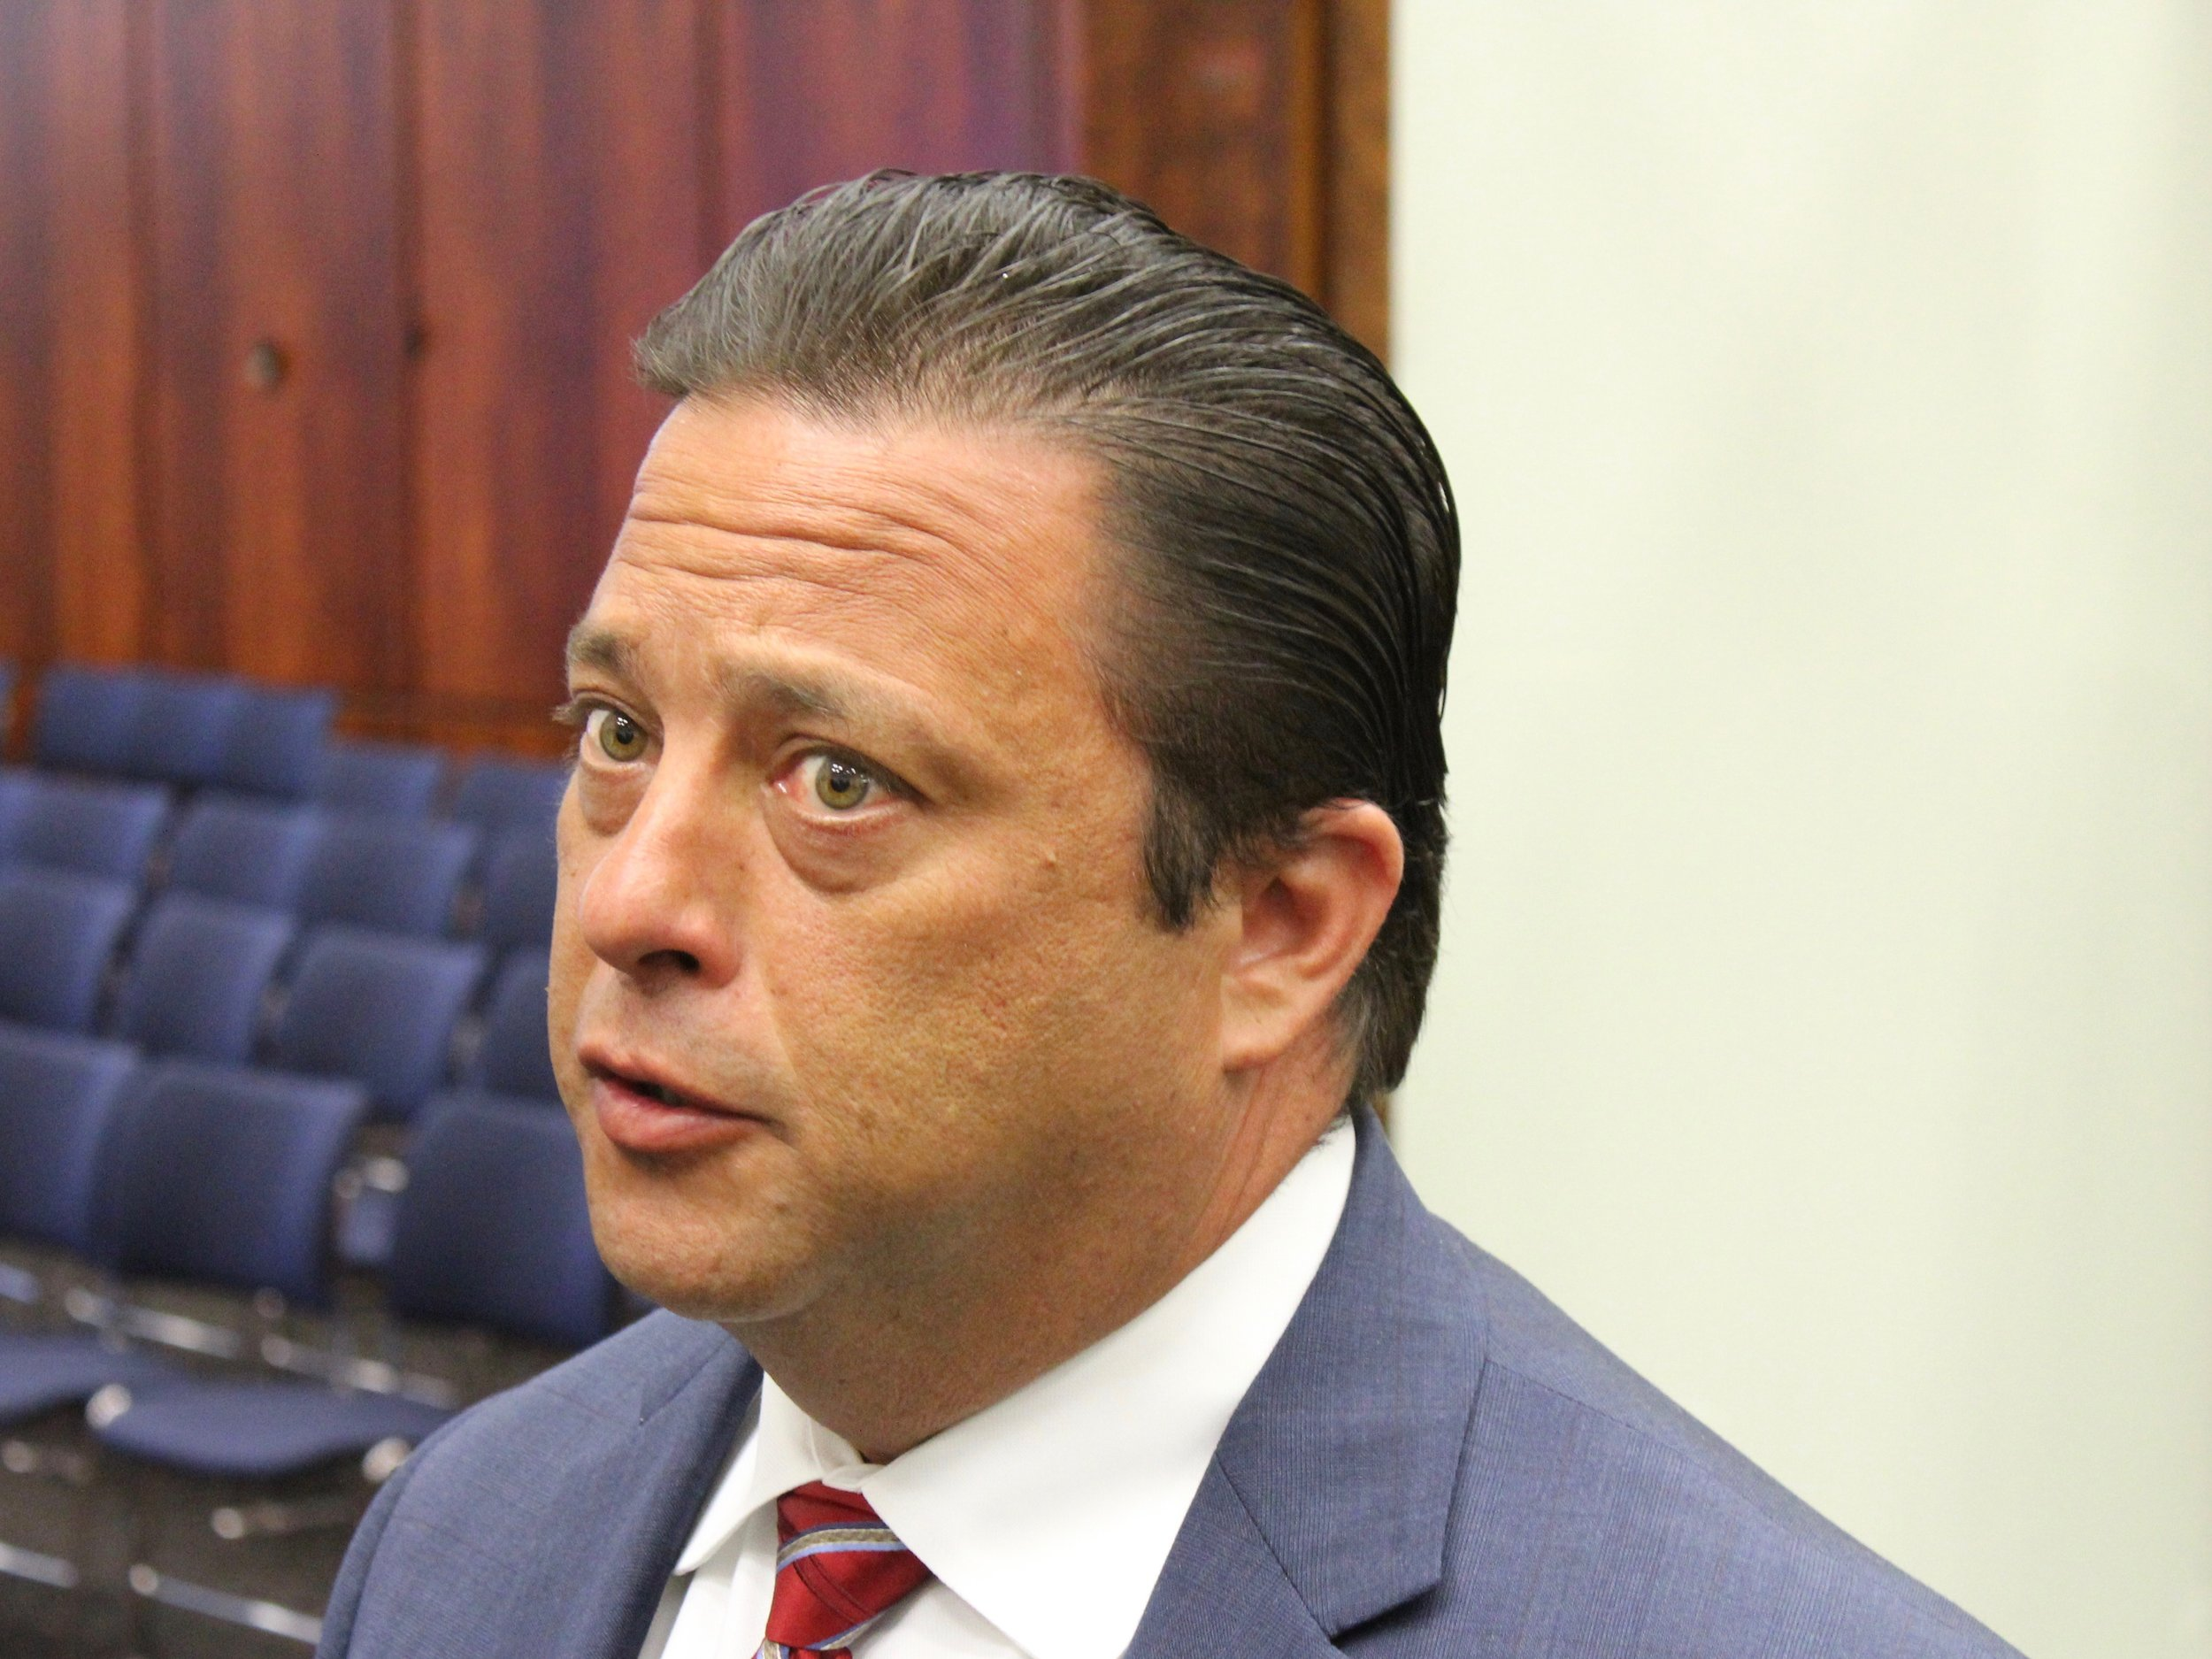 State Rep. Robert Rita wants to have a bill on legal sports gambling passed by the General Assembly by the end of its session May 31. (One Illinois/Ted Cox)